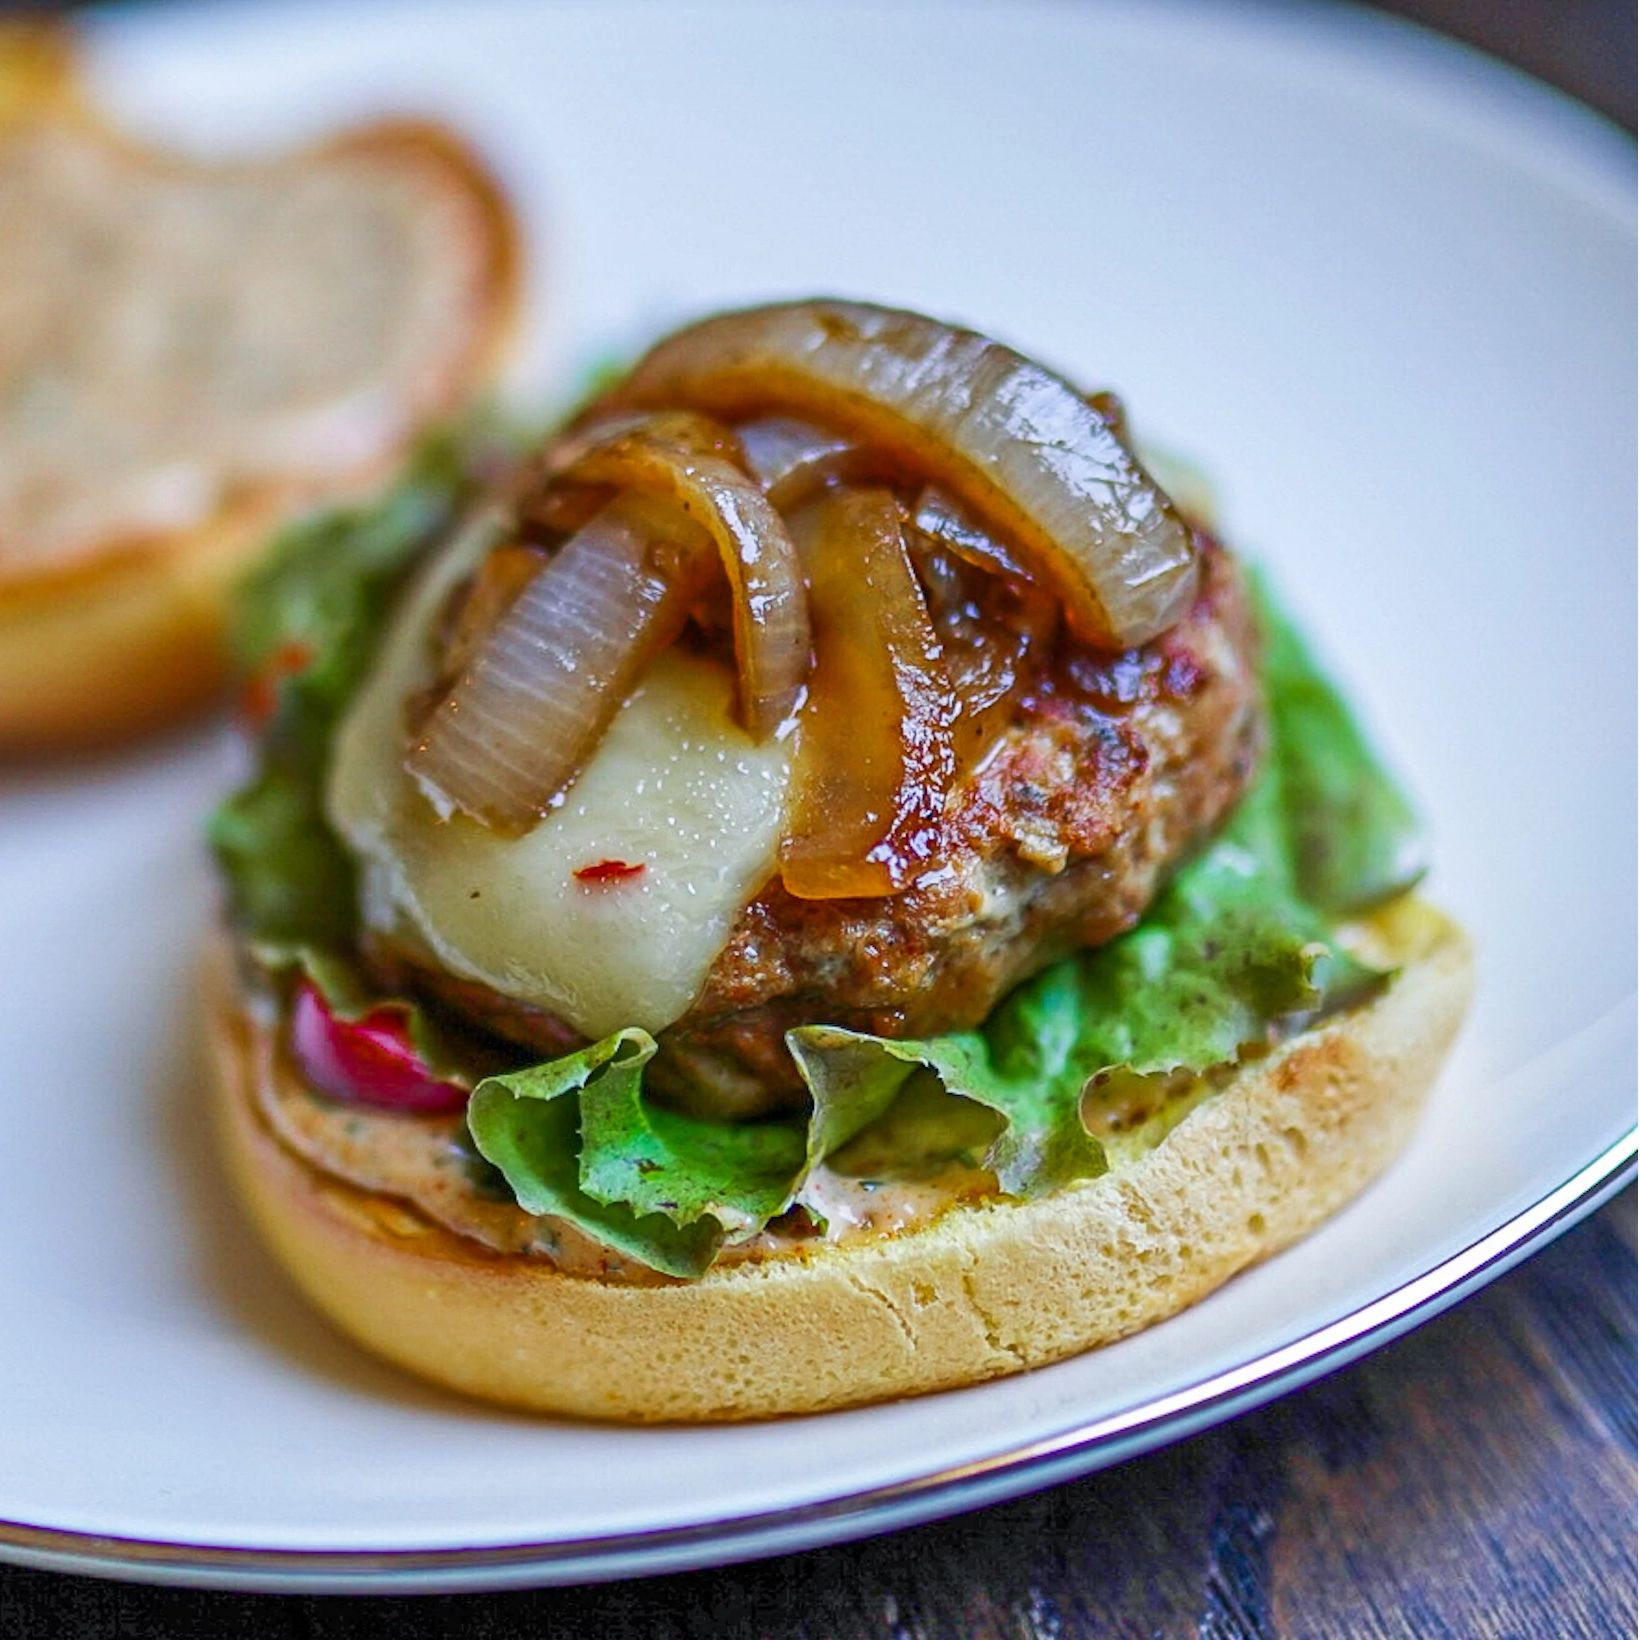 Taco Turkey Burgers with Ancho Chile Aioli & Onion Confit